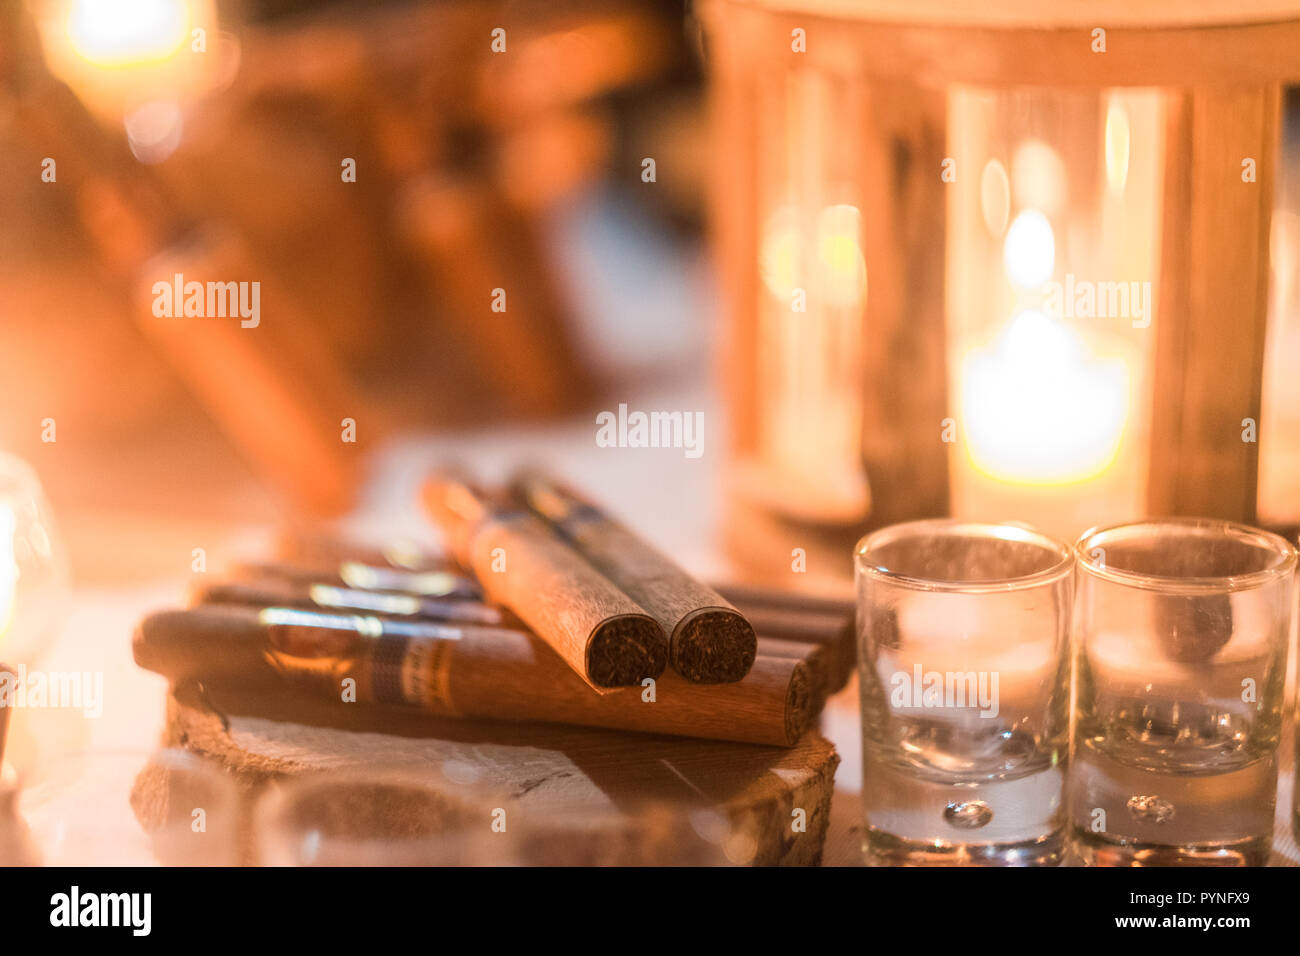 Cigar and rhum rum to end the night in friednship with men's things related. Bokeh and defocused image for conceptual mood about males - Stock Image